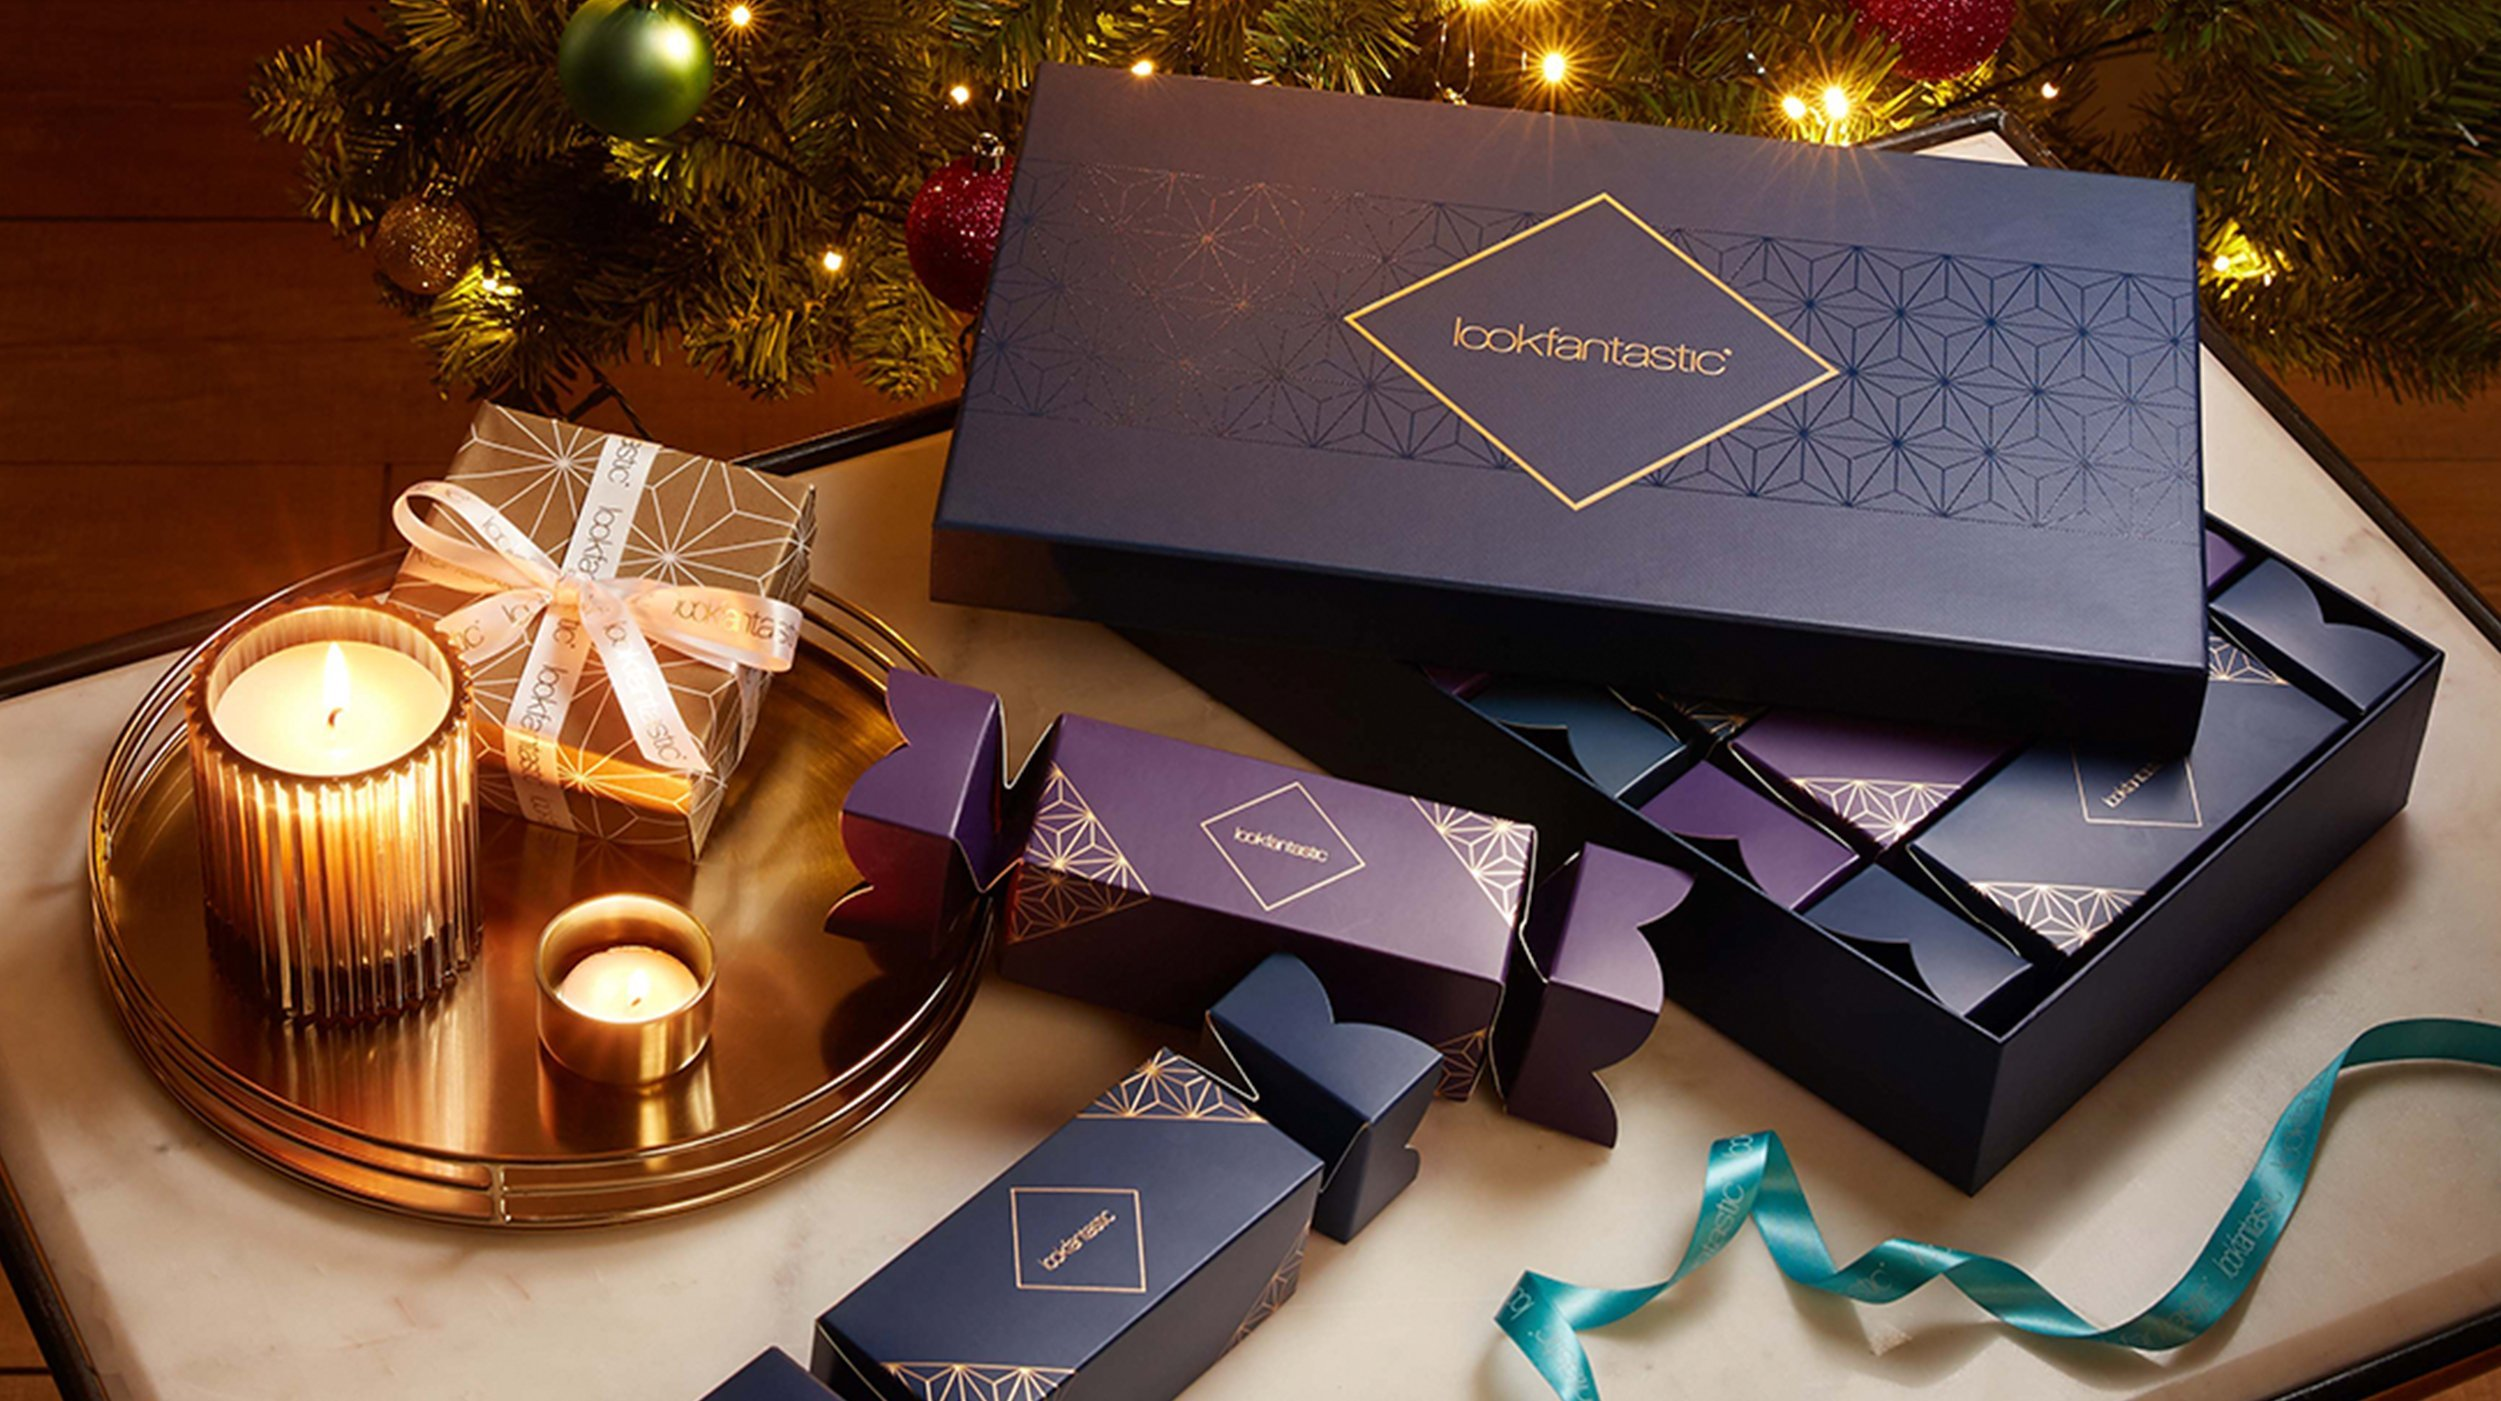 Give the gift of beauty this Christmas: The lookfantastic Christmas Collection 2019